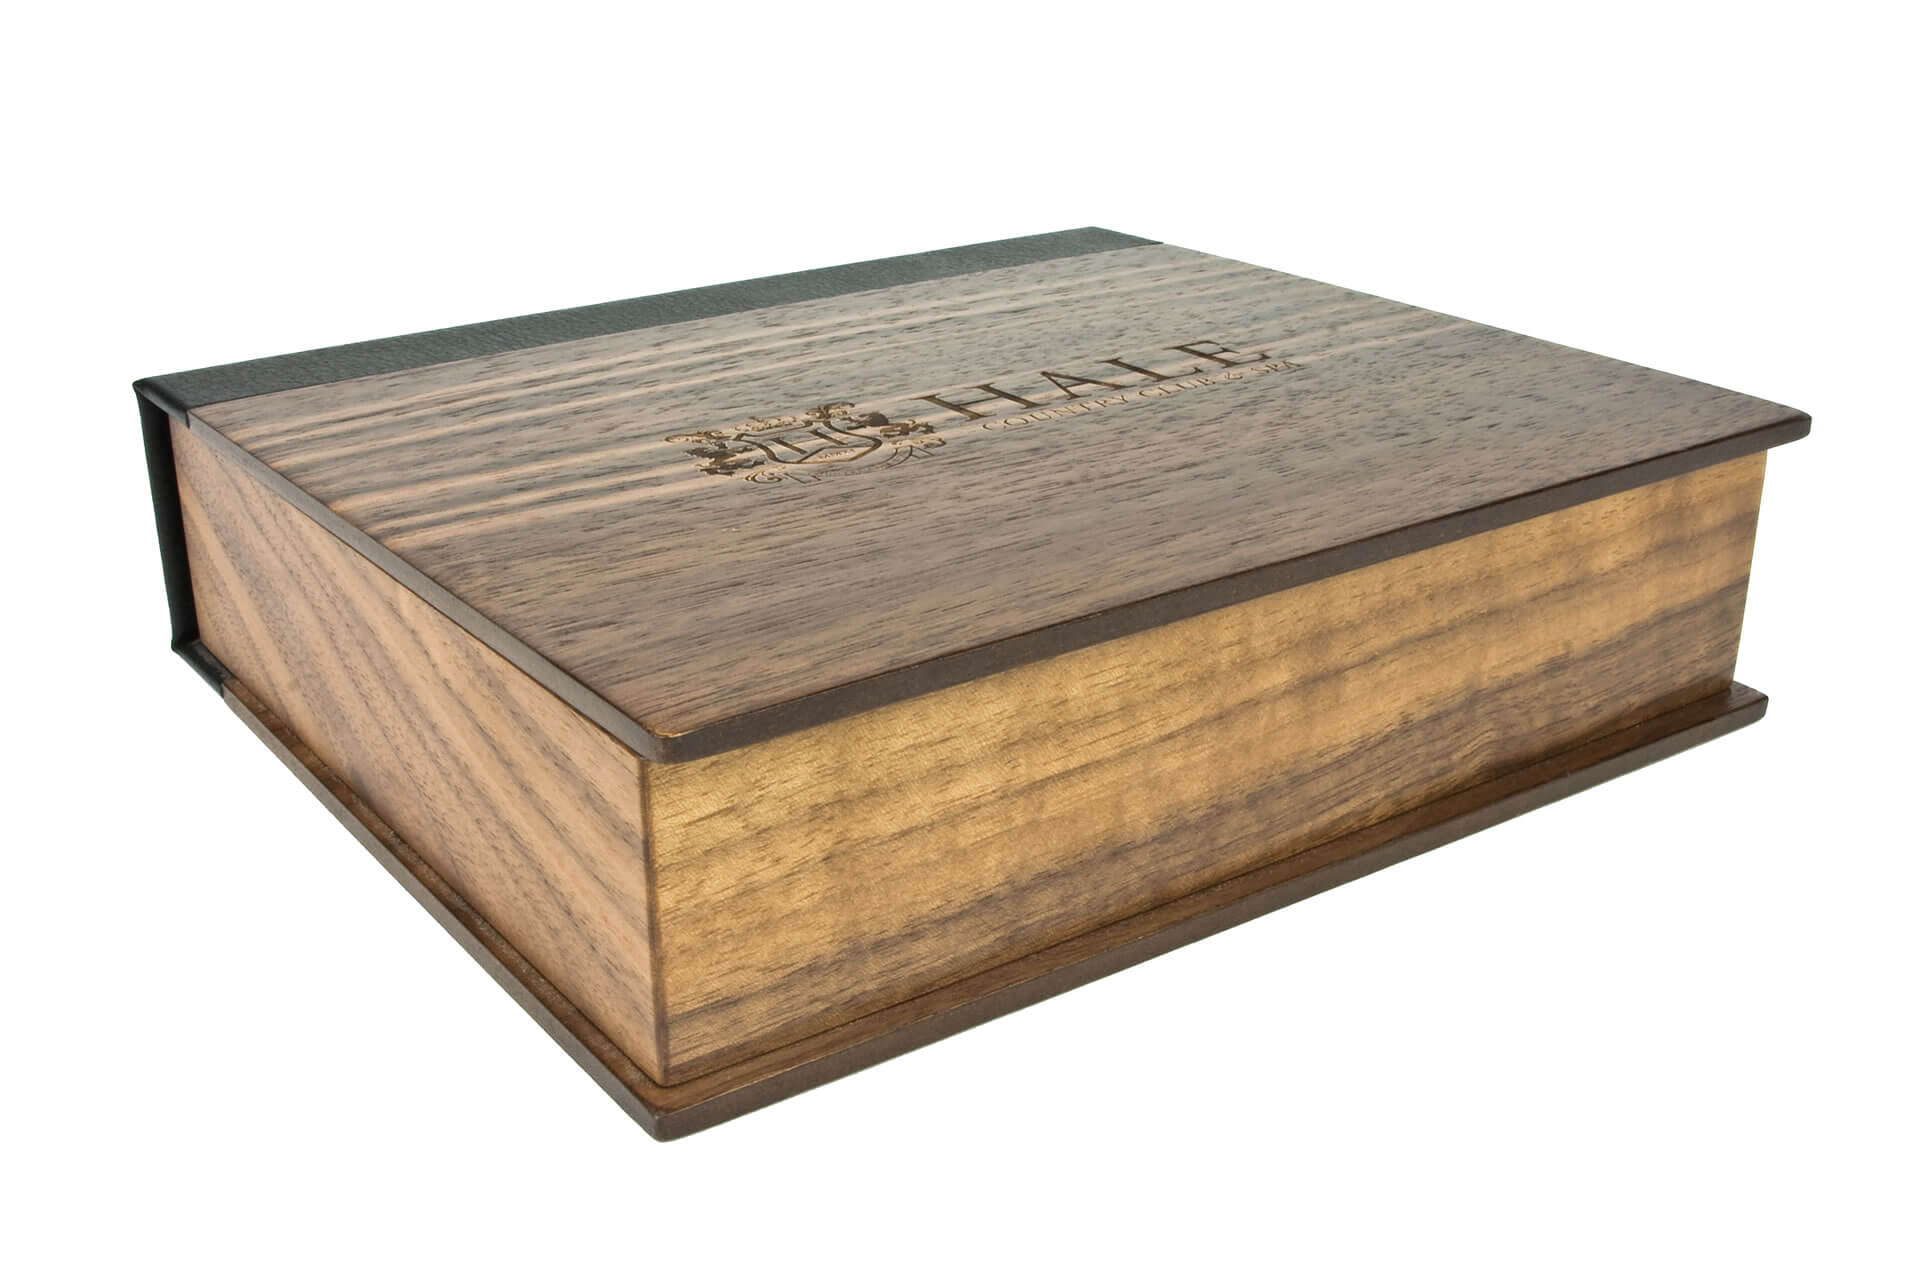 hale bespoke wooden folding lid presentation membership box laser engraving corner detail